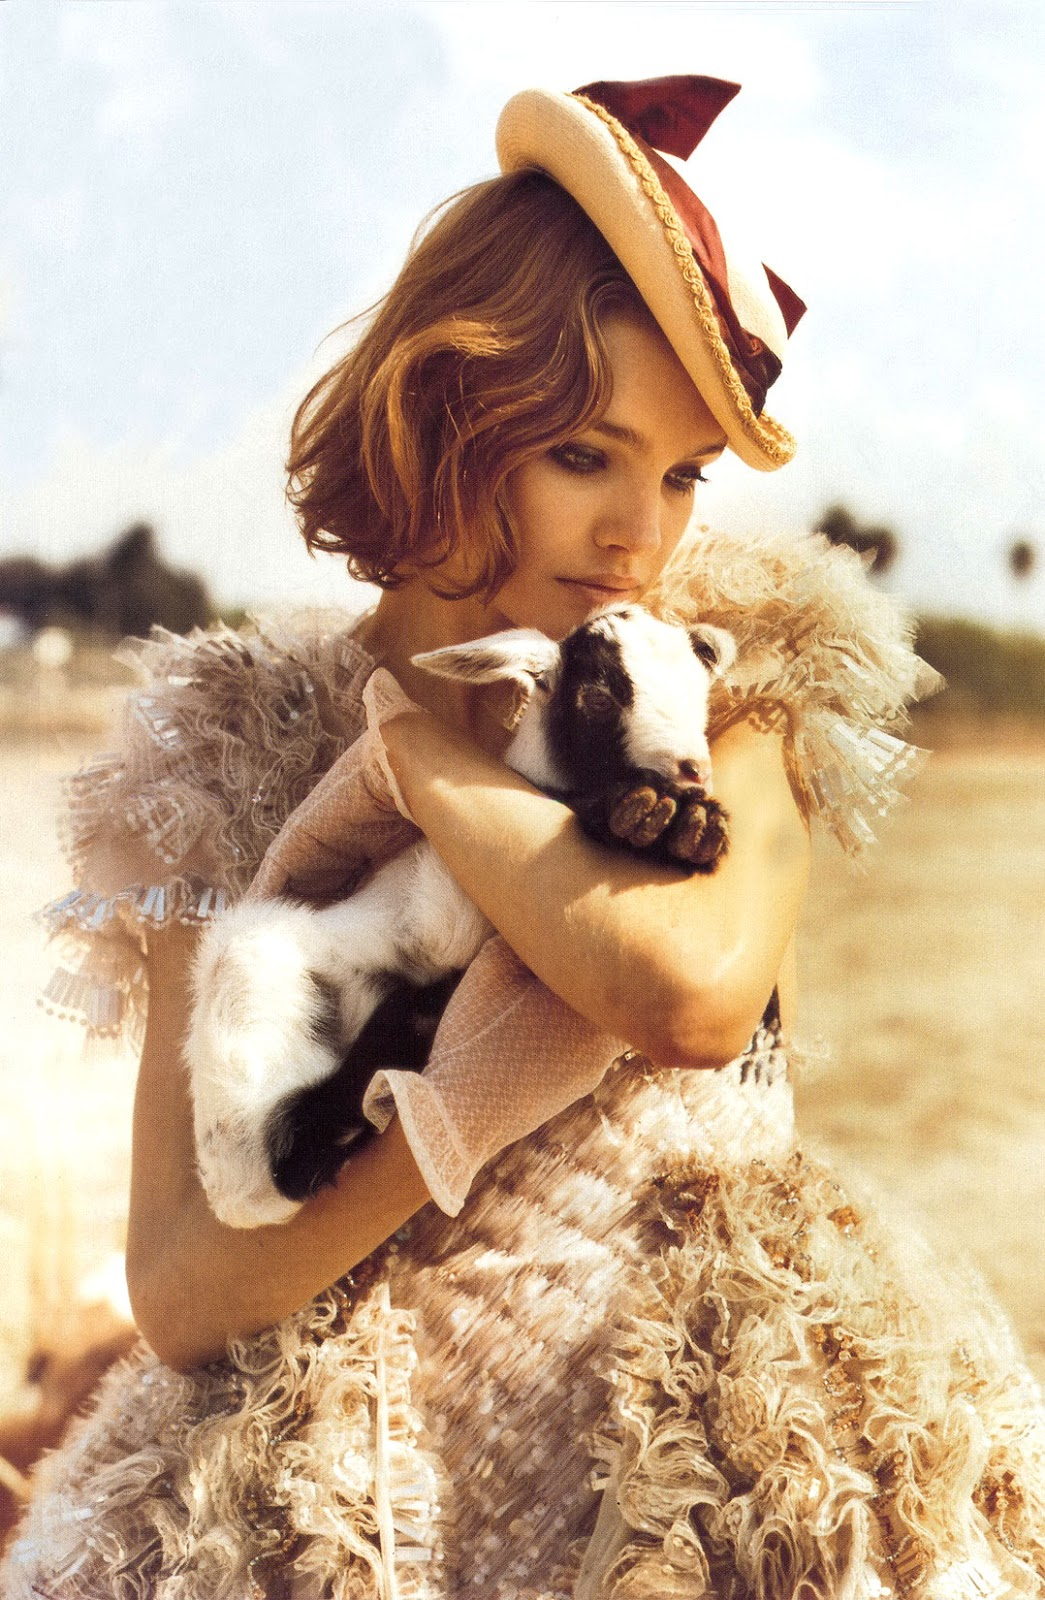 Natalia Vodianova in Outlaw couture | Vogue Italia March 2008 (photography: Bruce Weber, styling: Anne Christensen)